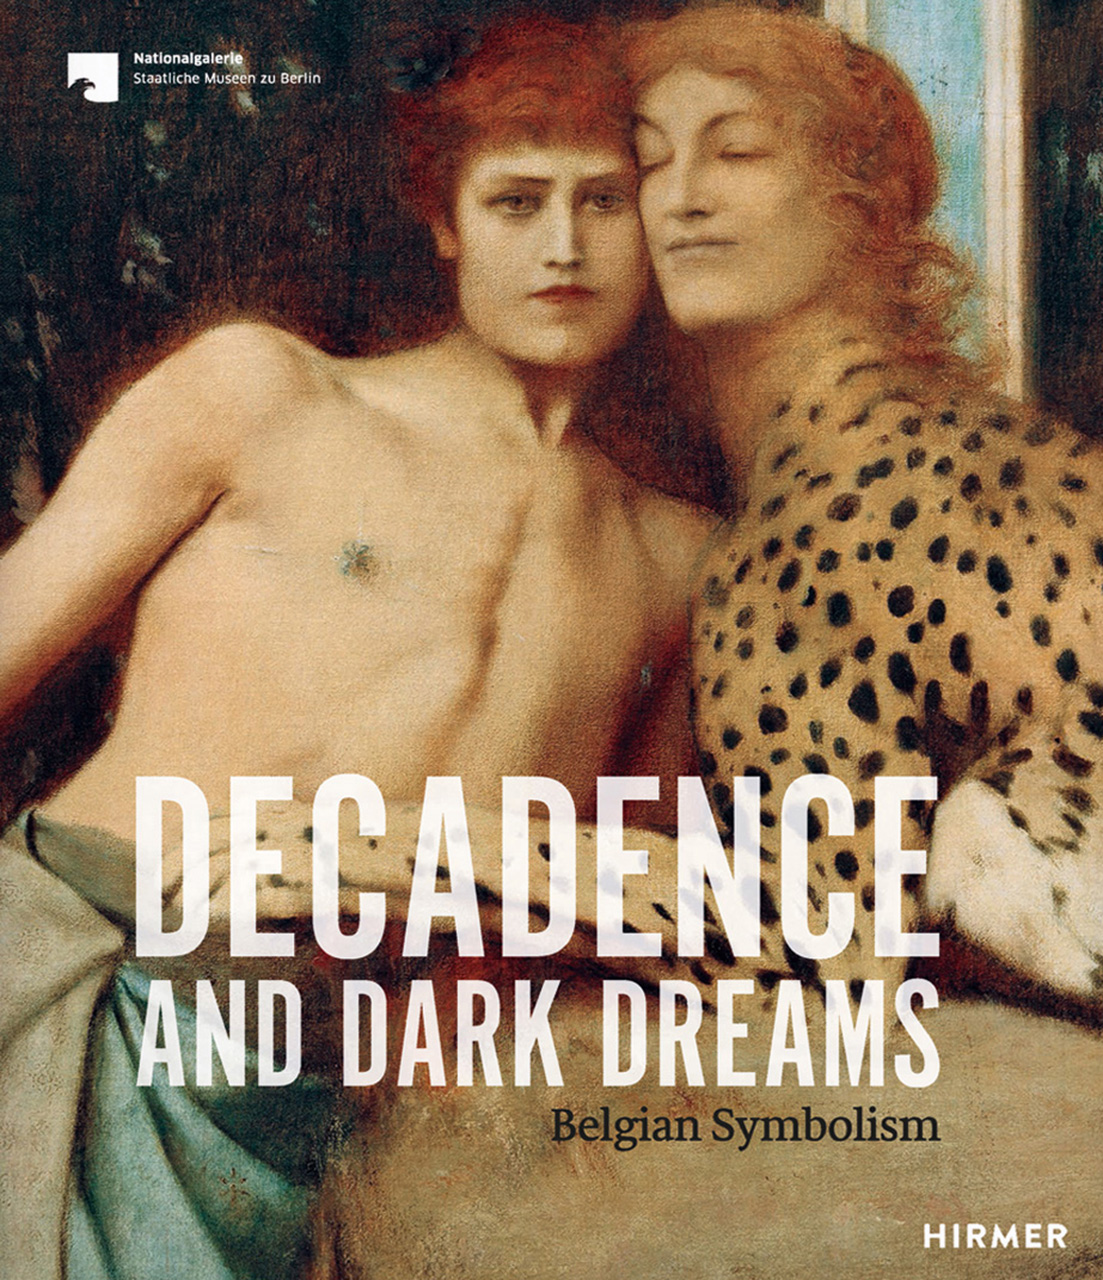 Decadence and Dark Dreams: Belgian Symbolism